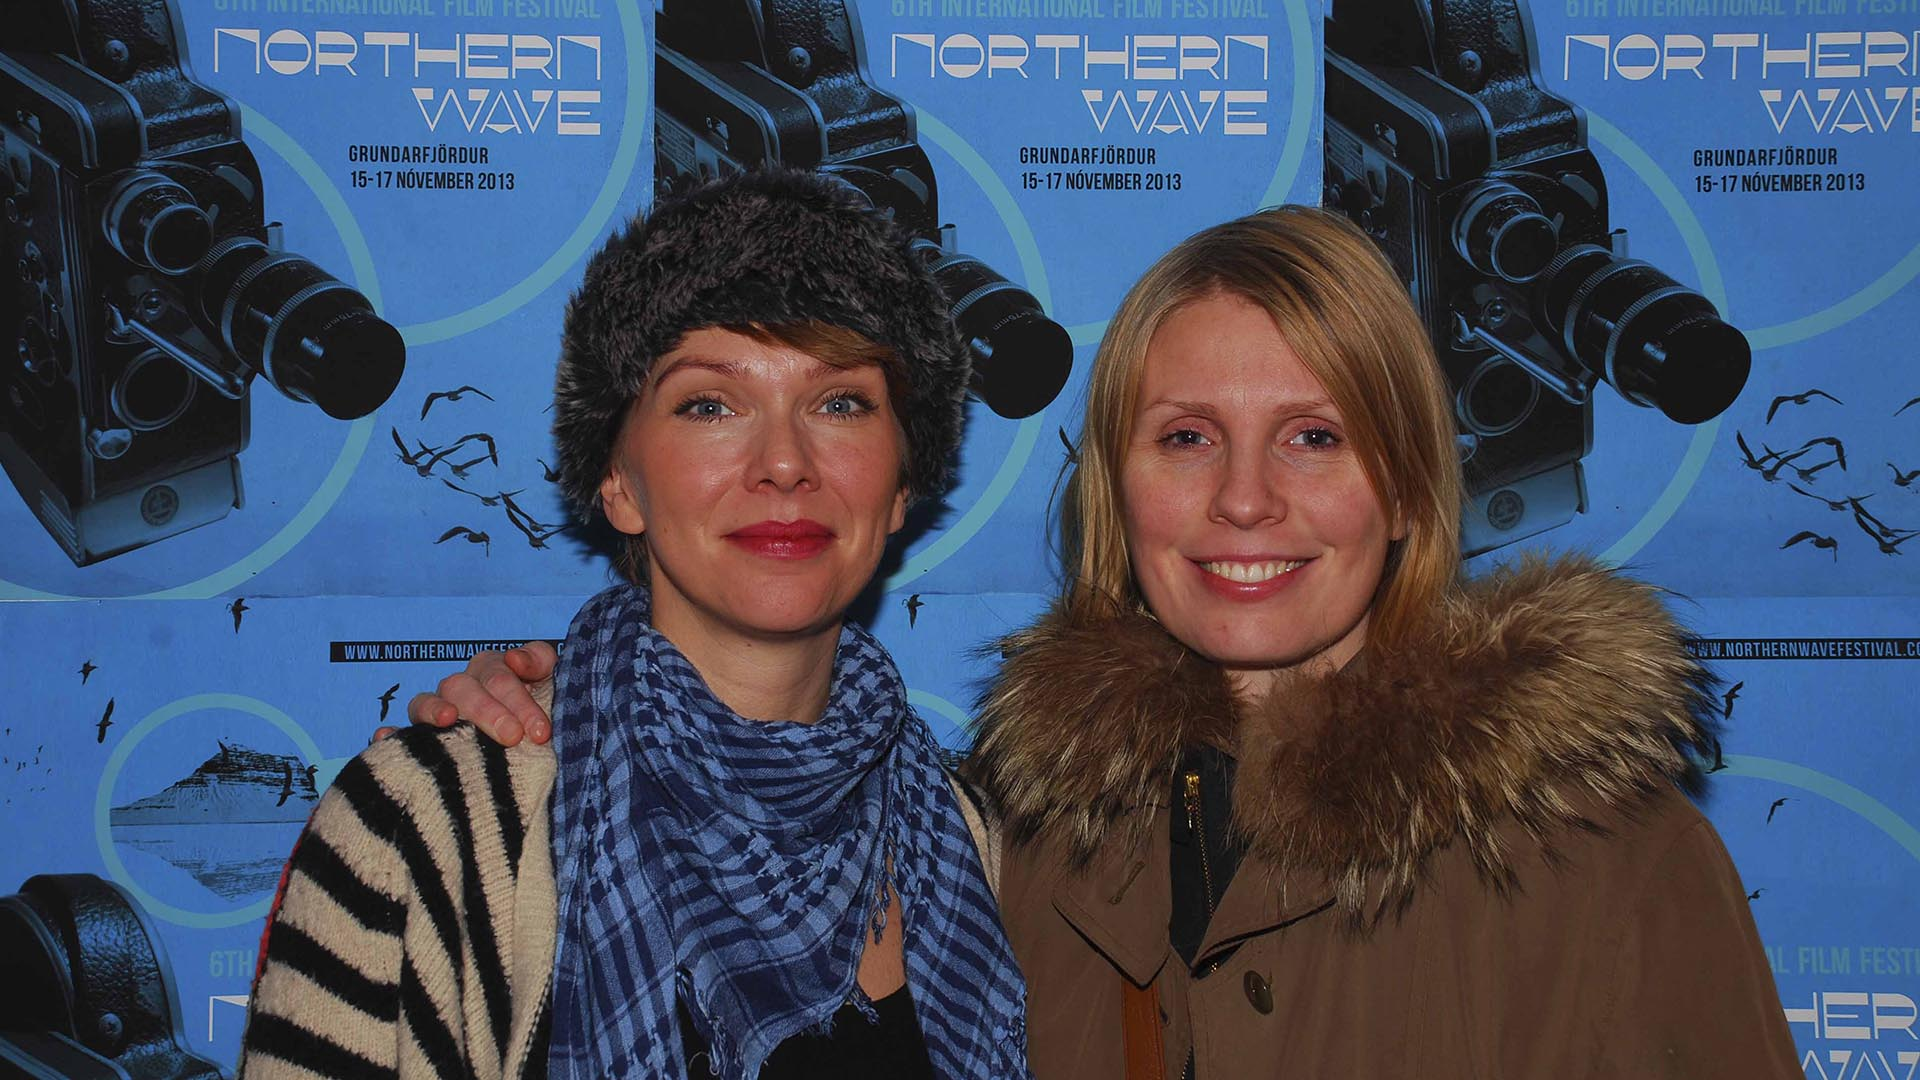 Dögg Mósesdóttir is the founder and director of NW International Film Festival